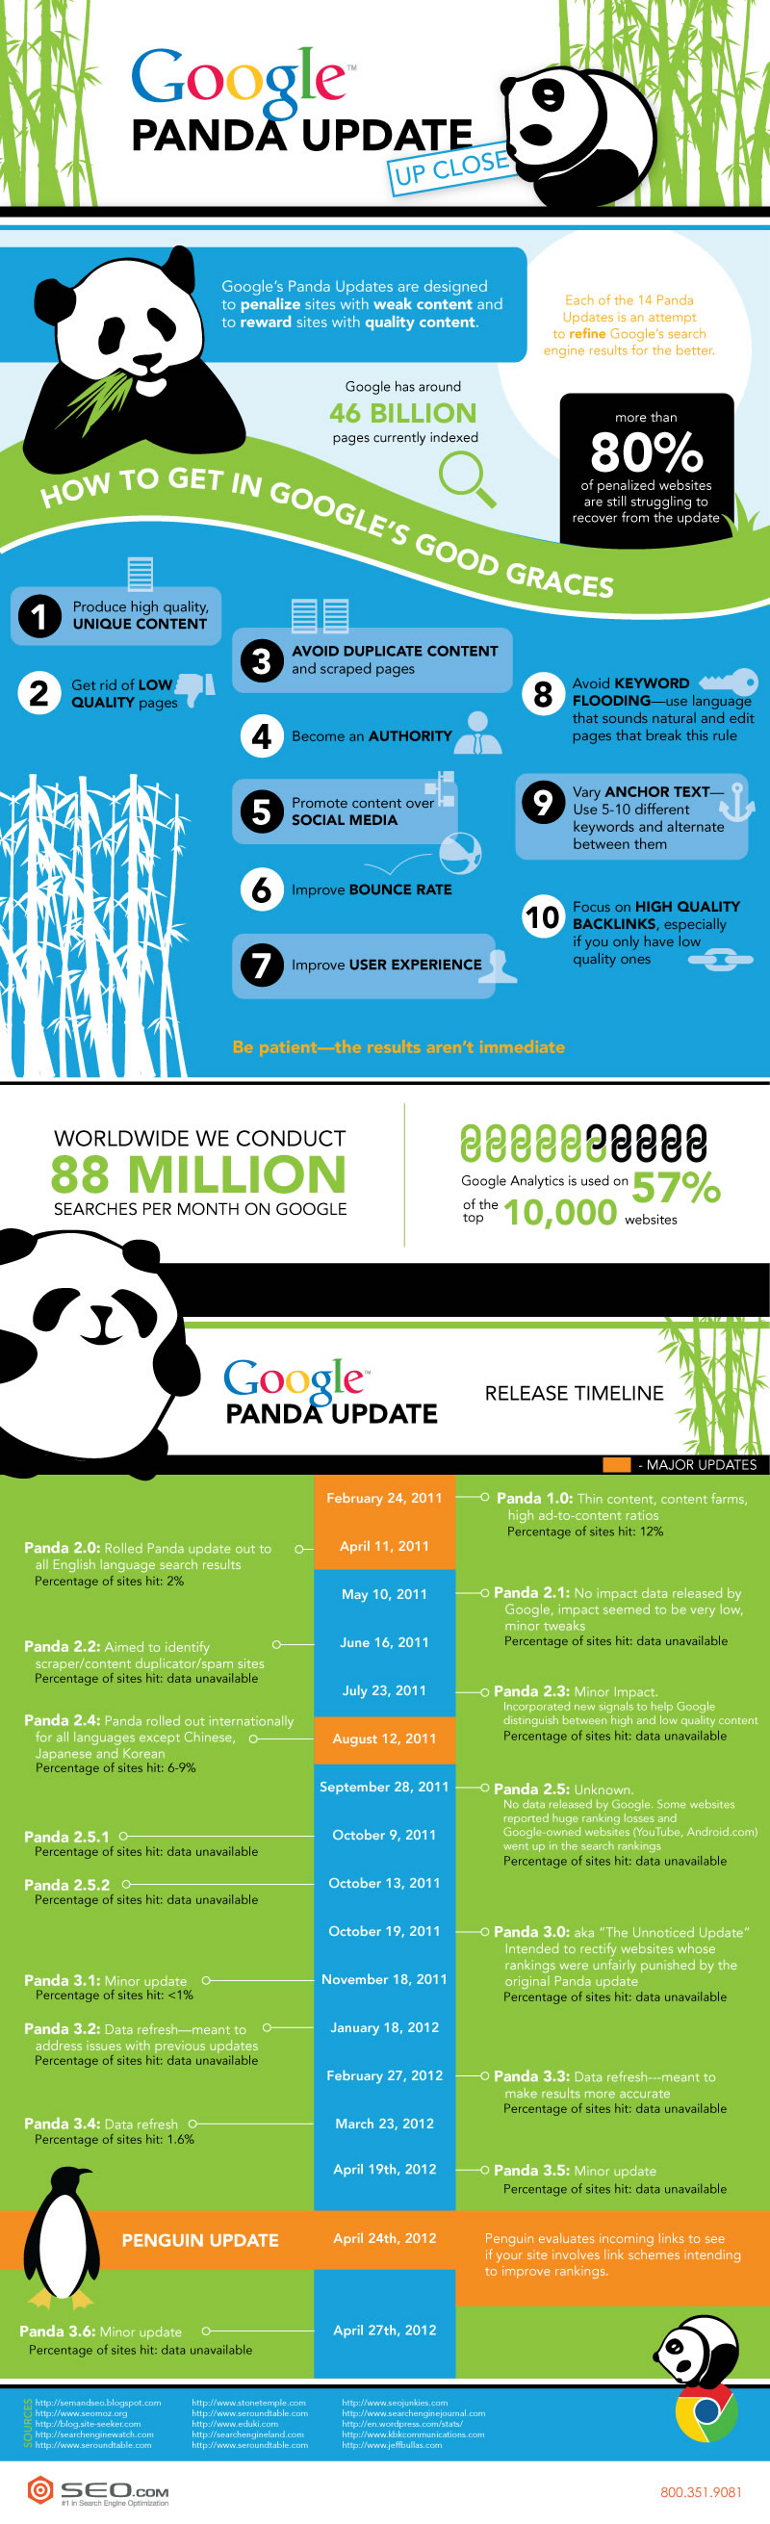 How to Recover from a Google Panda Update Penalty